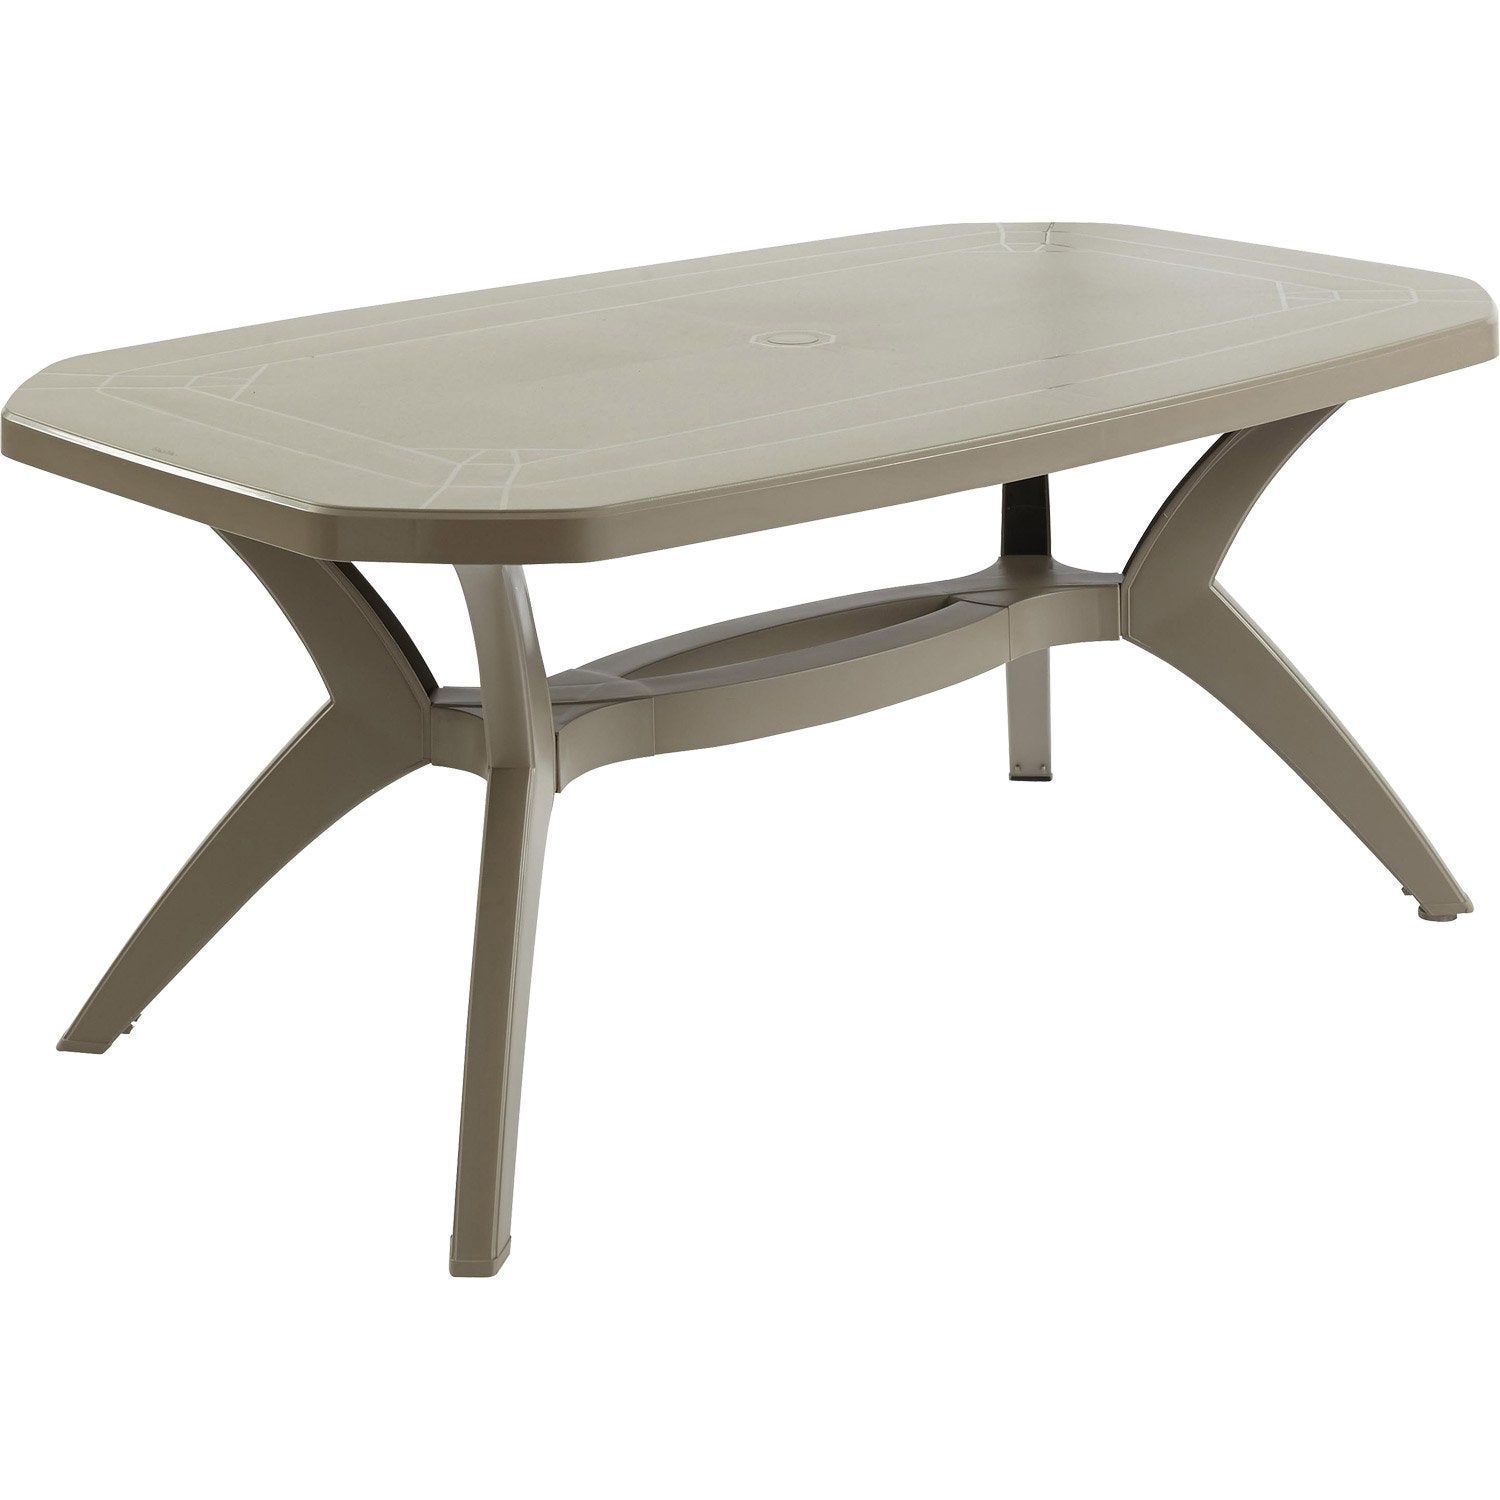 Table Basse De Jardin Grosfillex